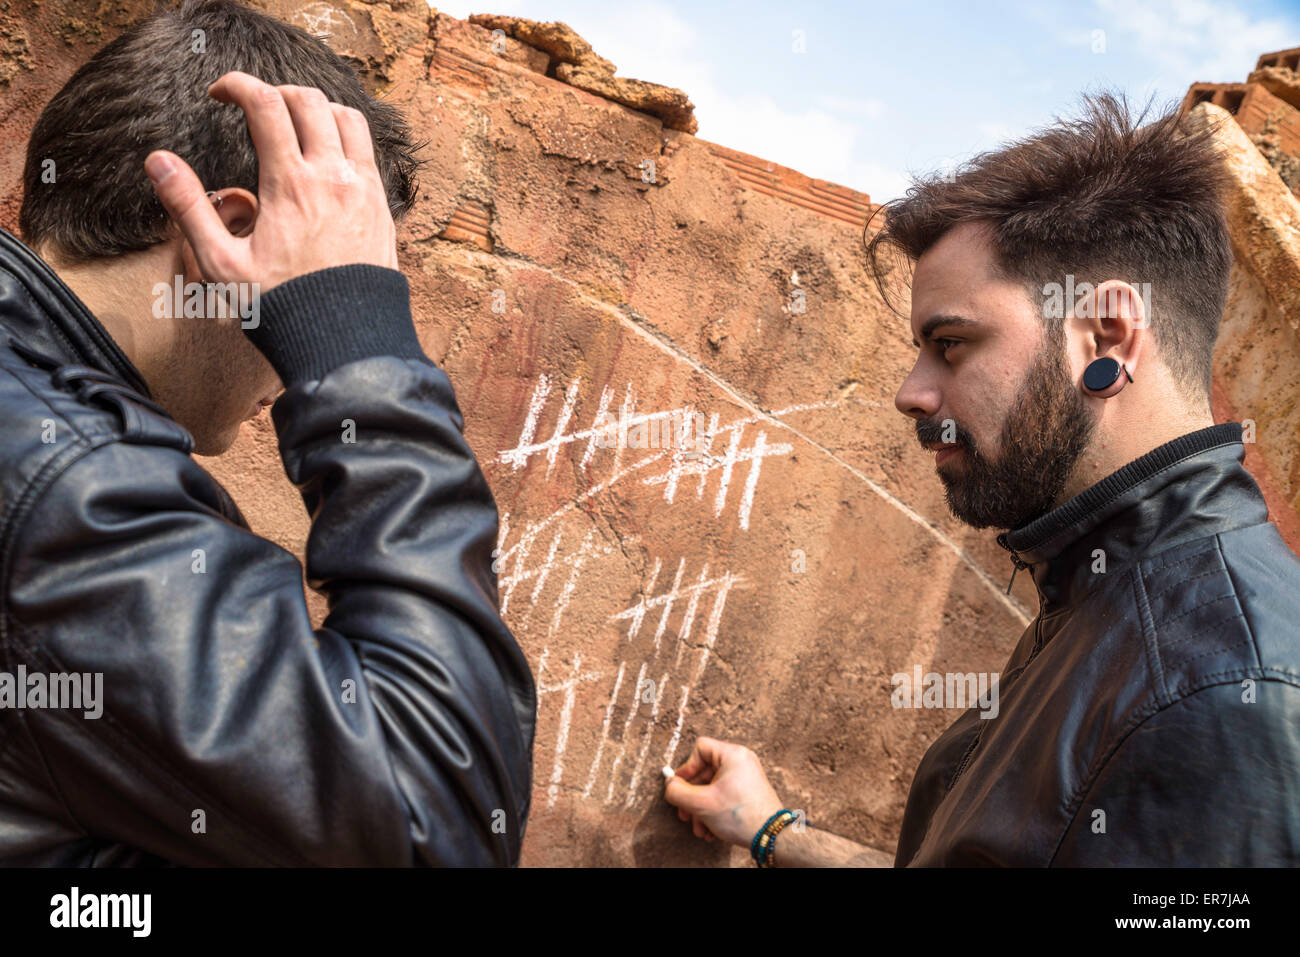 two guys counting days with chalk markings on a wall stock photo